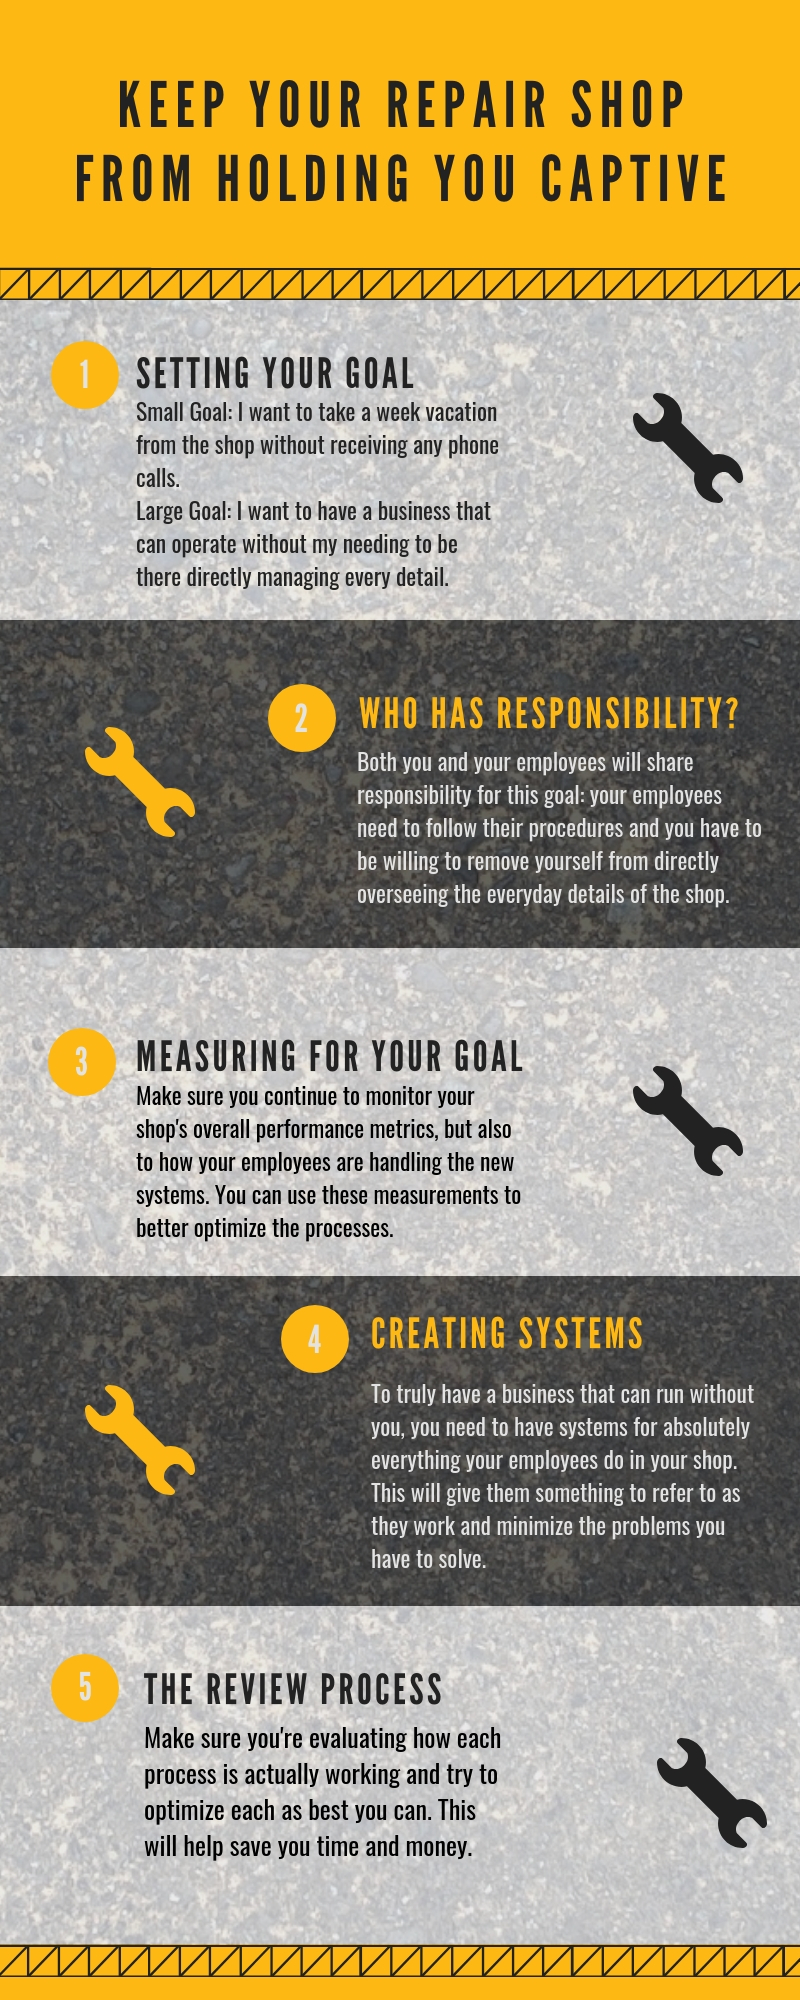 Keep Your Repair Shop from Holding You Captive Infographic | Highway & Heavy Parts